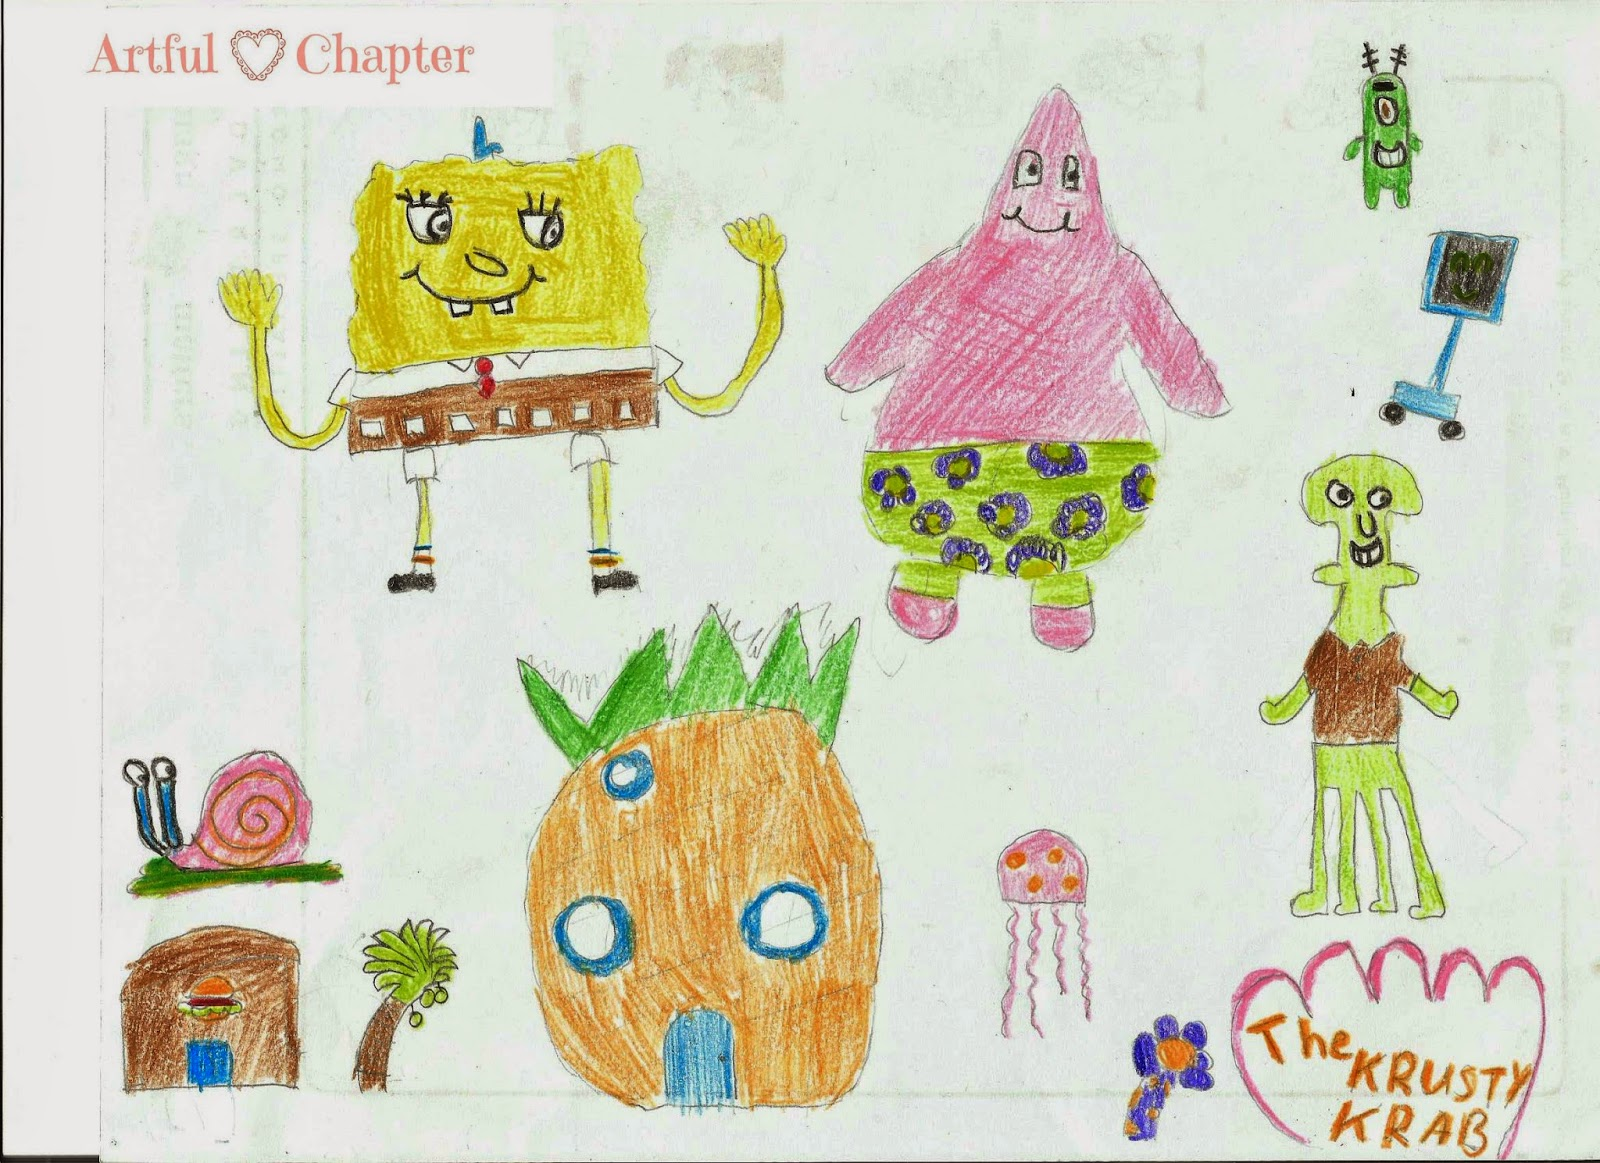 Freehand Drawing Of Spongebob Cartoon Characters Artful Chapter